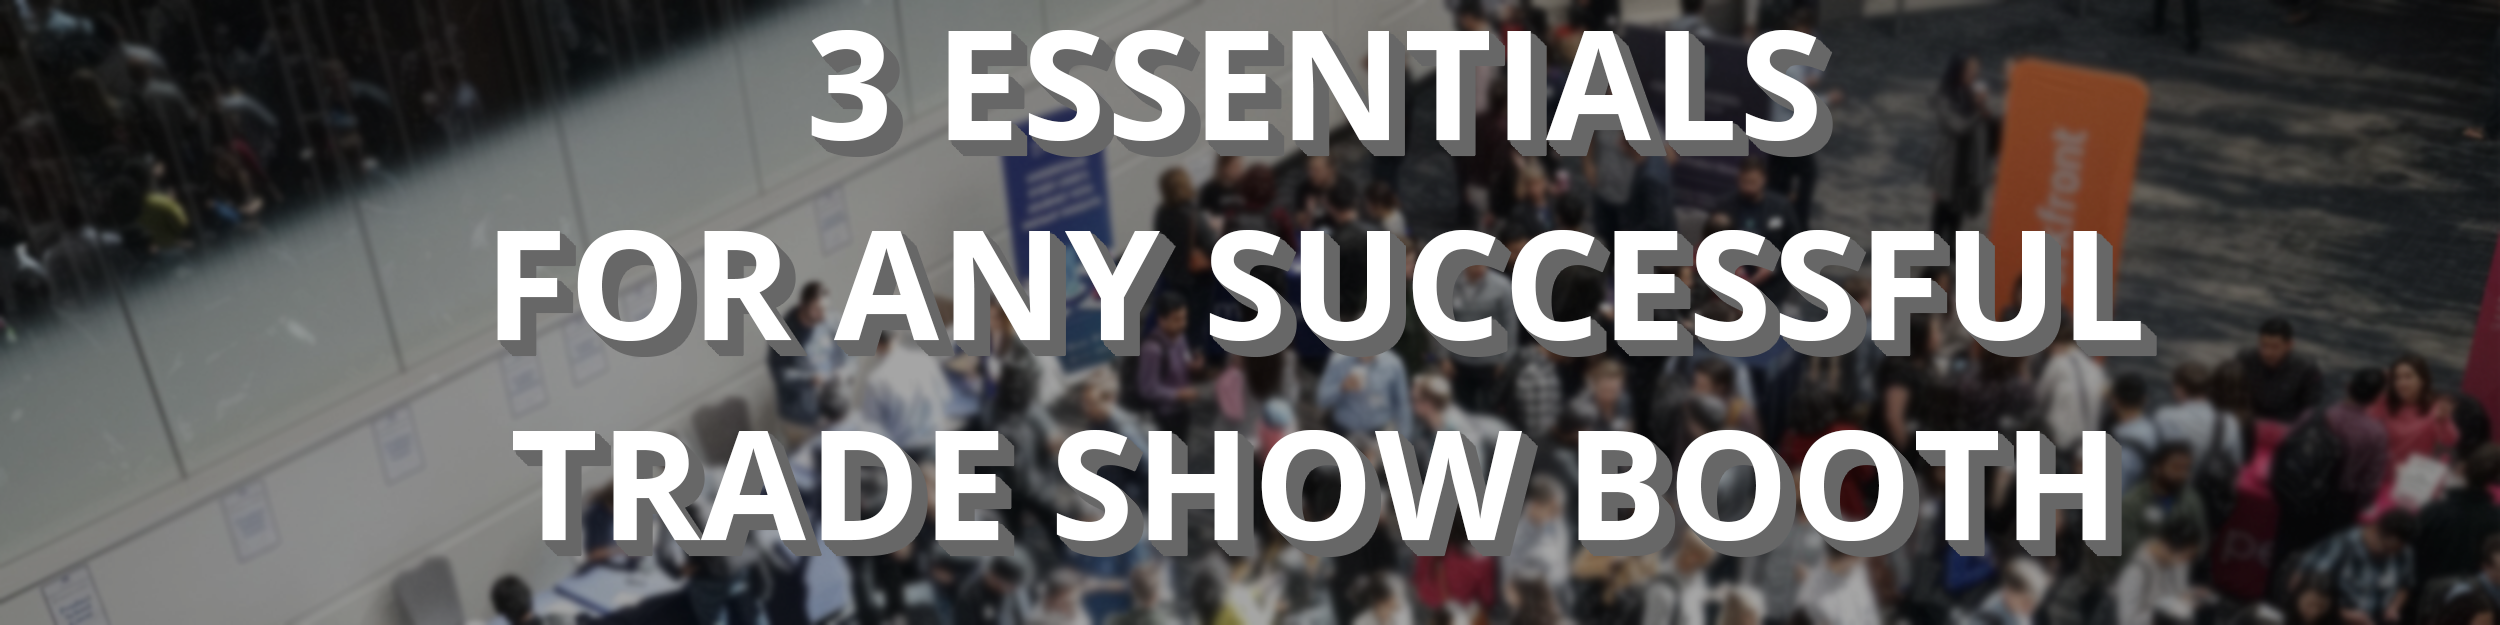 3 Essentials for Any Successful Trade Show Booth